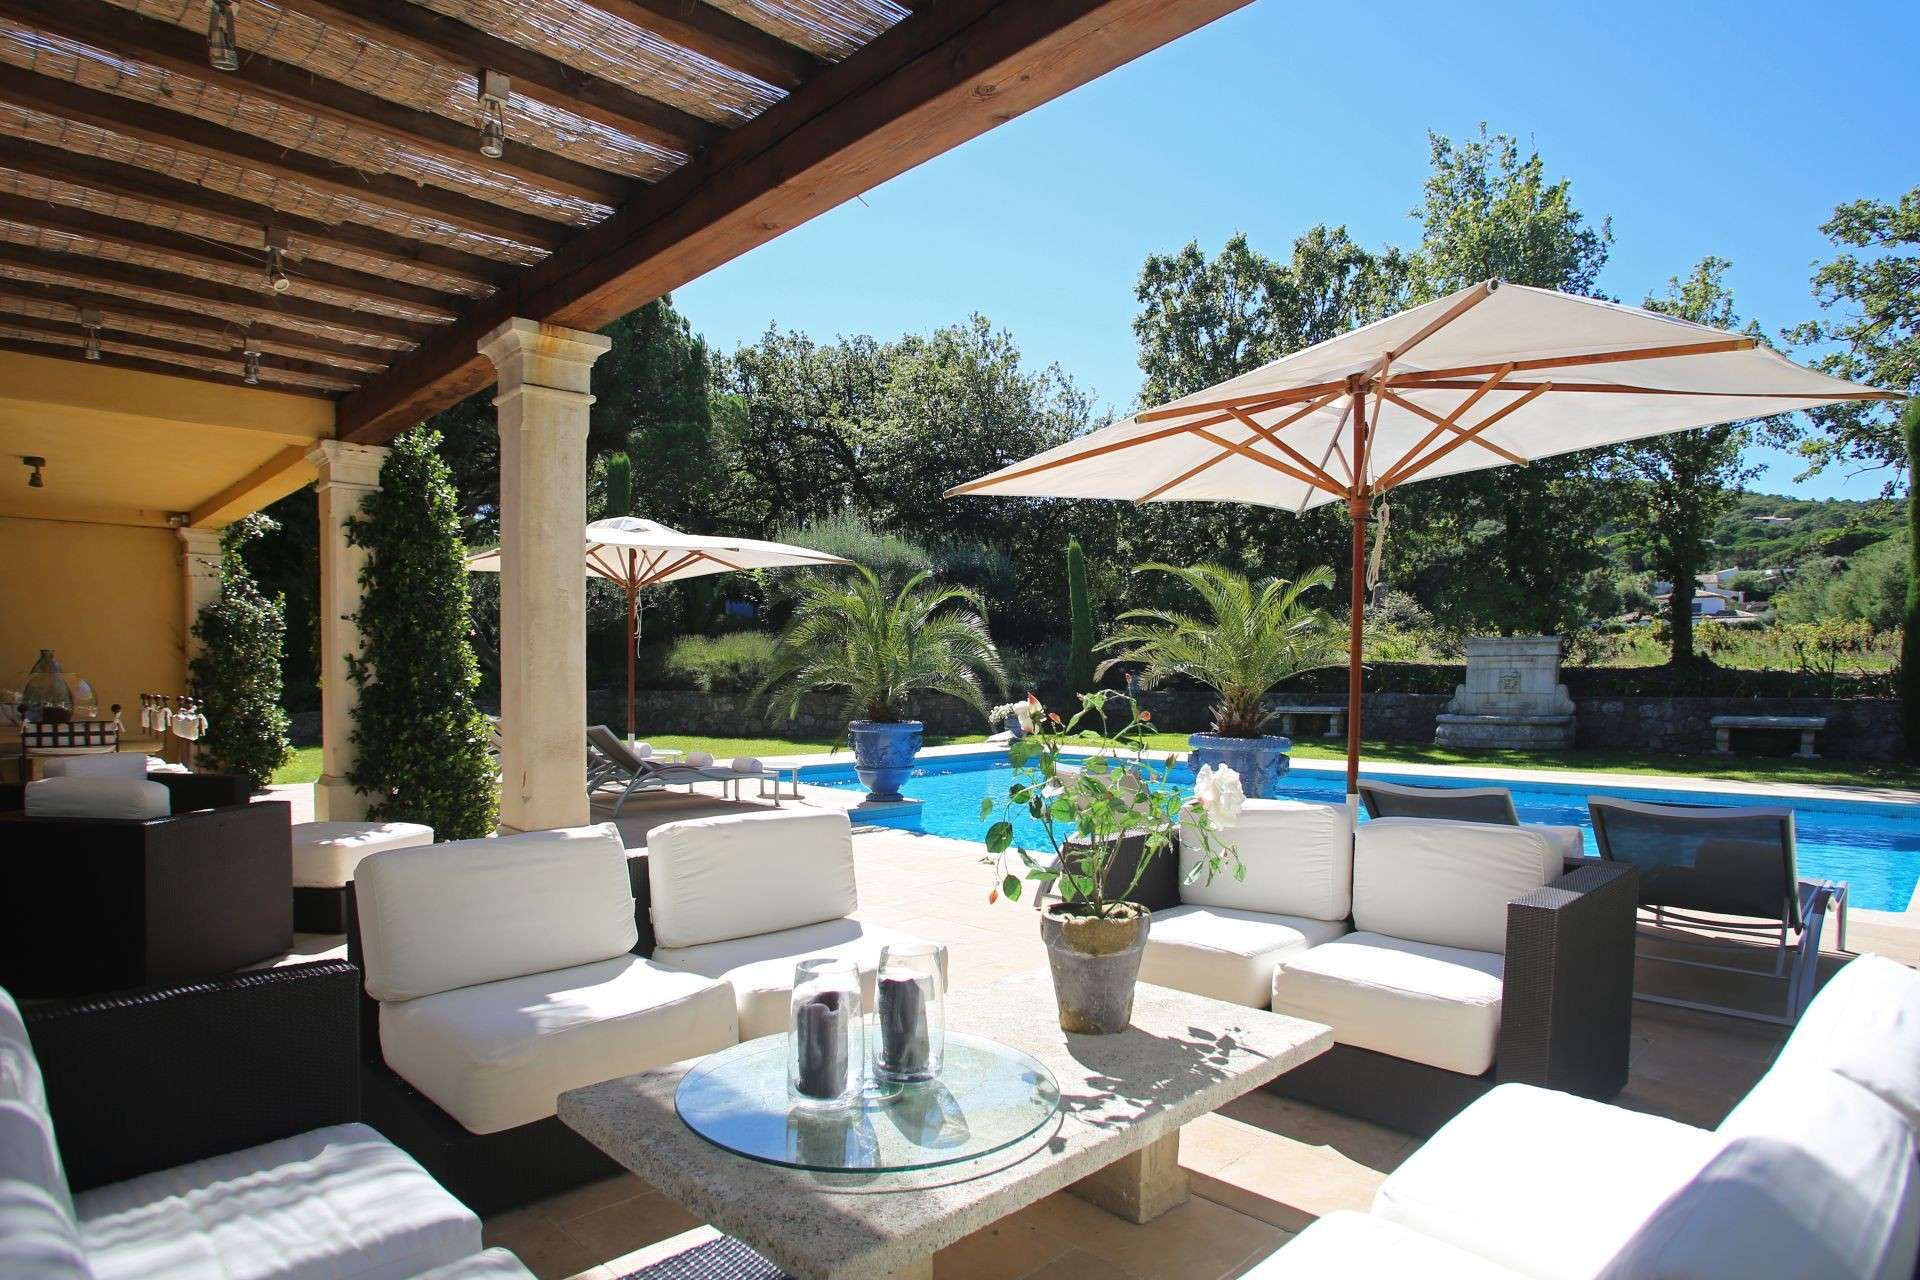 Luxury vacation rentals europe - France - French riviera - Saint tropez - La Tropezienne - Image 1/19